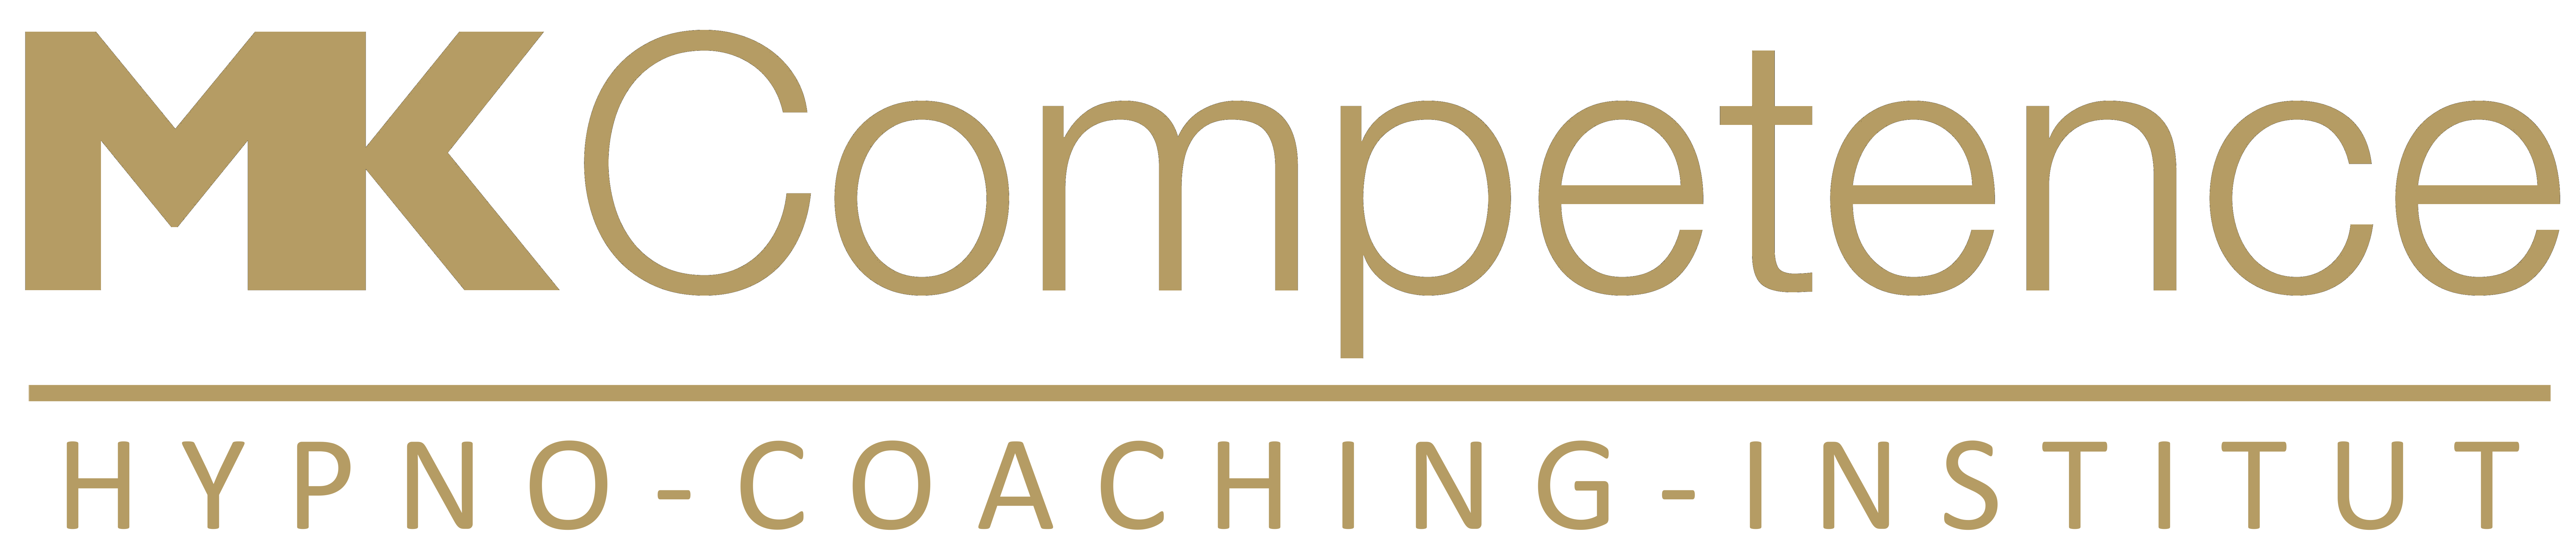 MK Competence | Hypnosis-Coaching